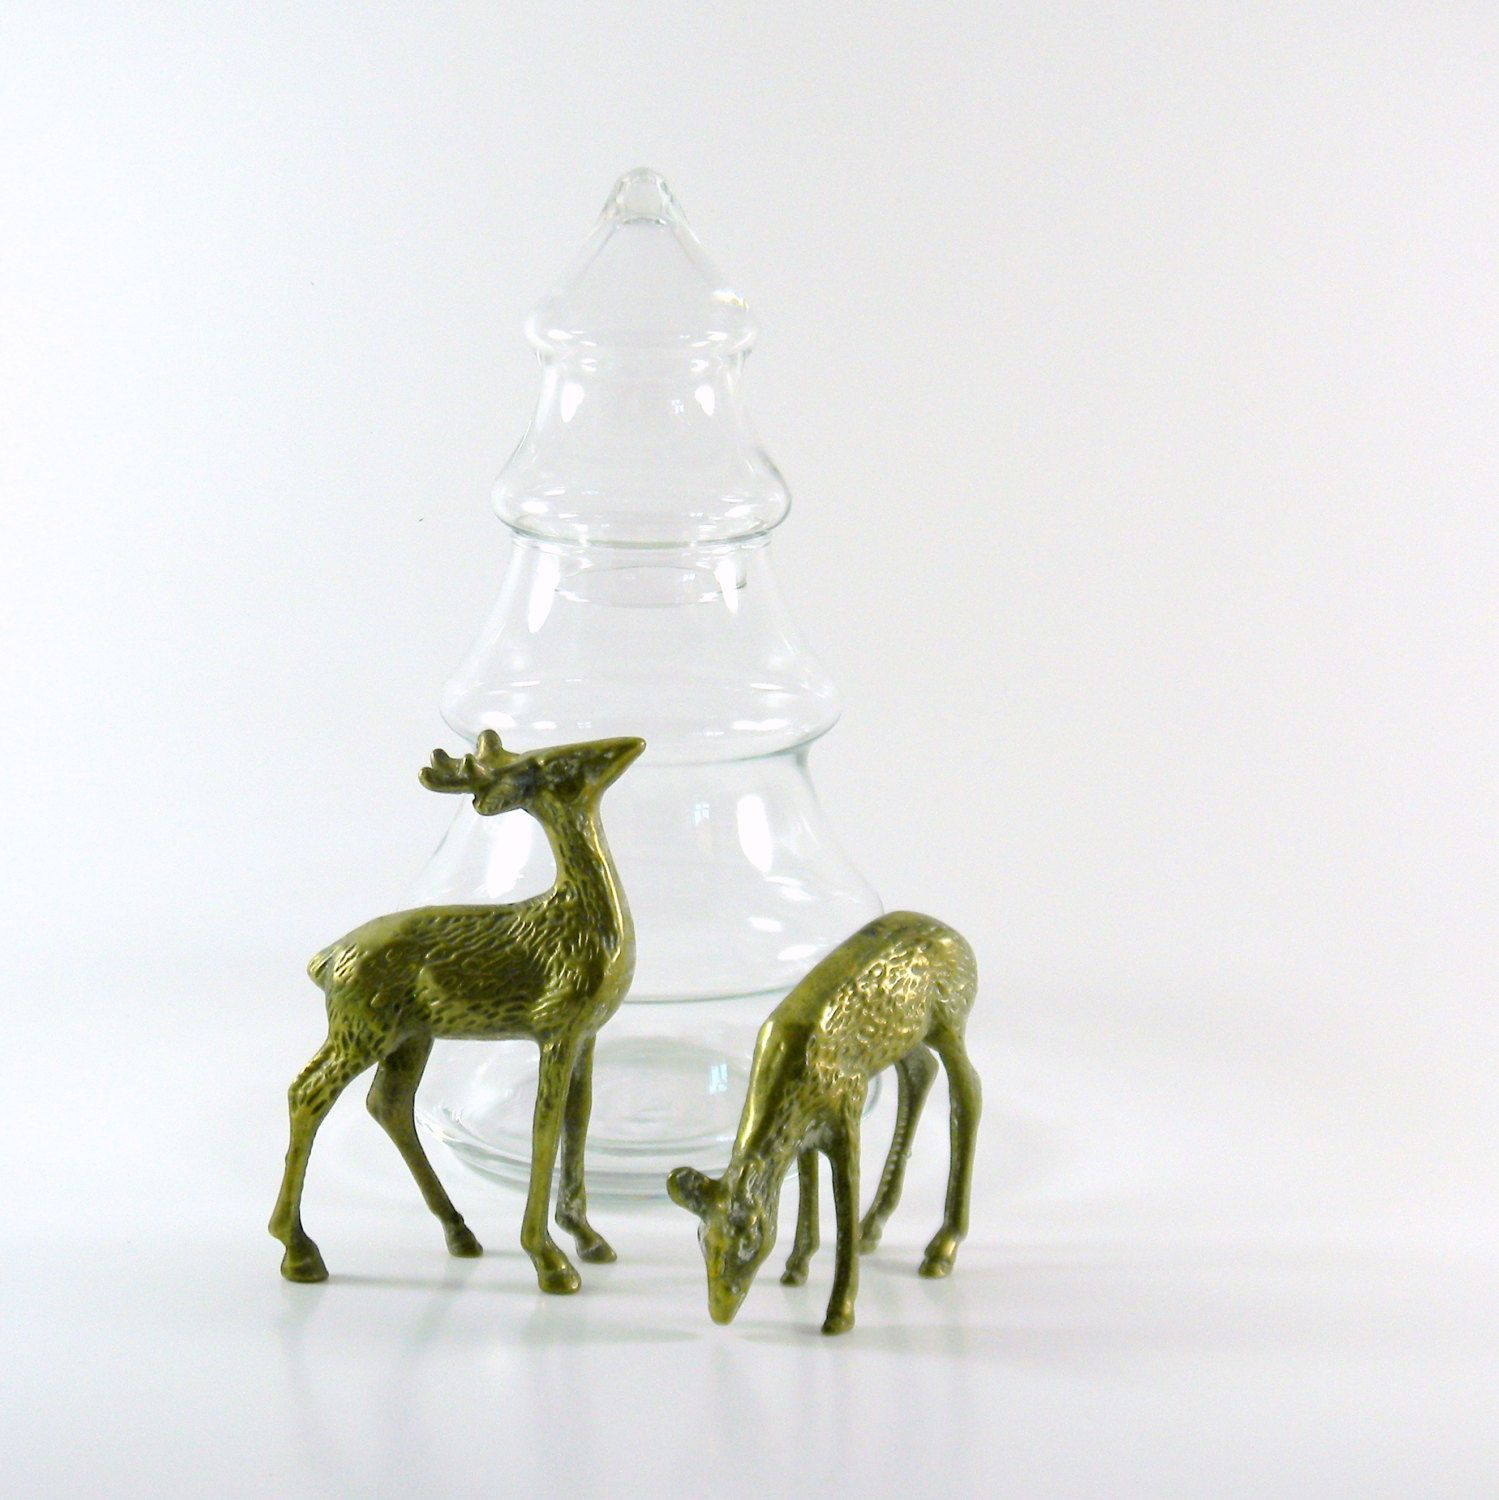 Vintage 1960s Rustic Brass Deer Couple, $18.50 from Bliss Vintage on Etsy